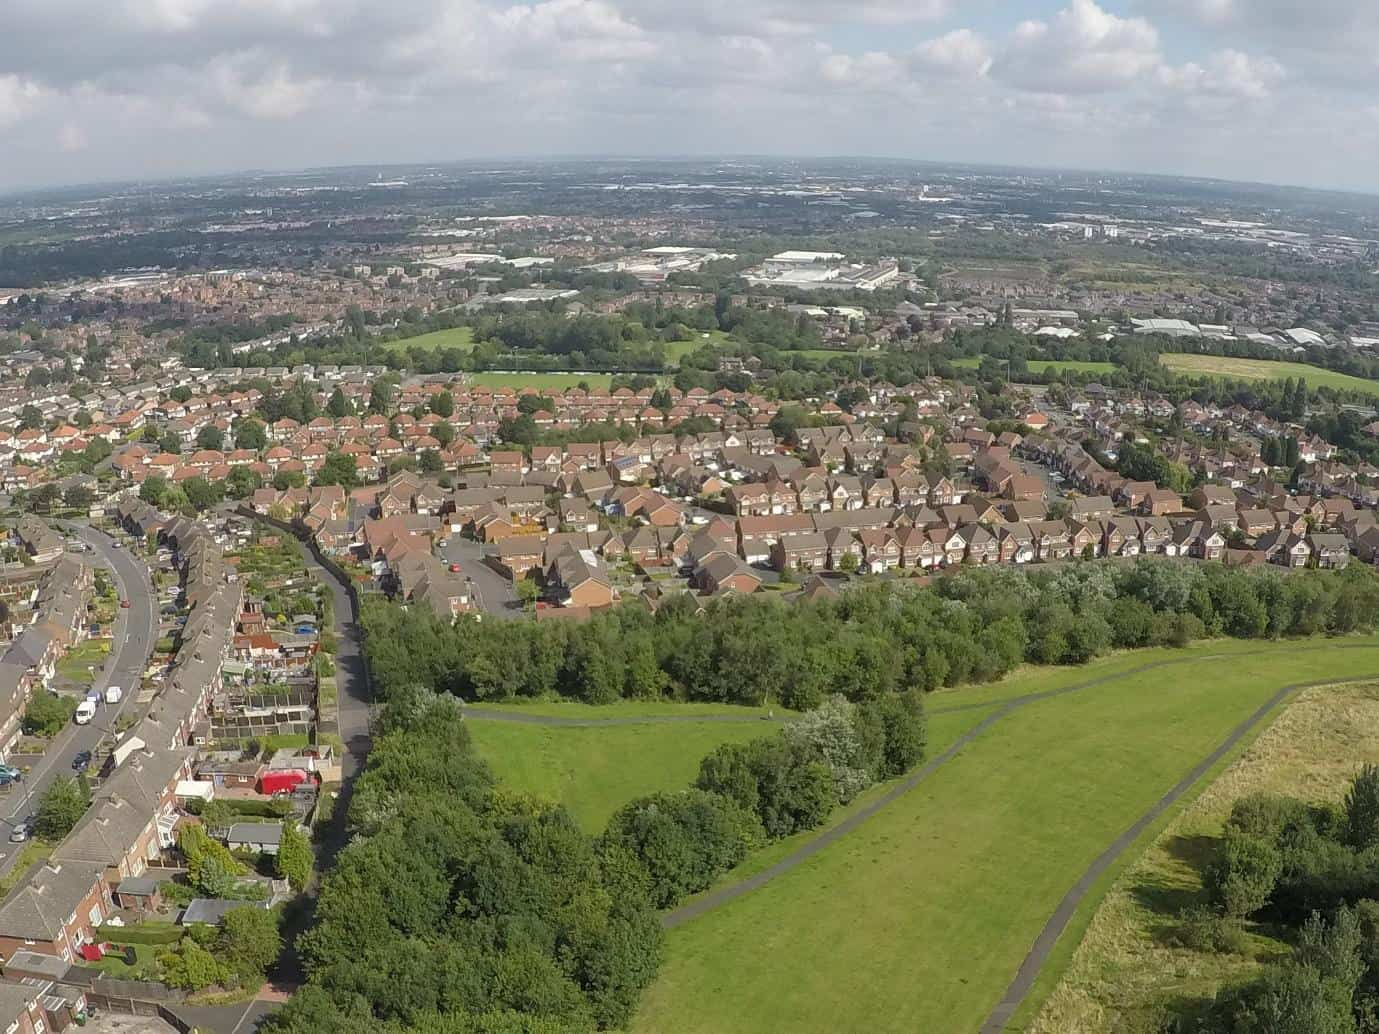 Looking towards Tividale Park in the middle distance; the grassed part is the edge of the now-filled in Grace Mary Quarry.